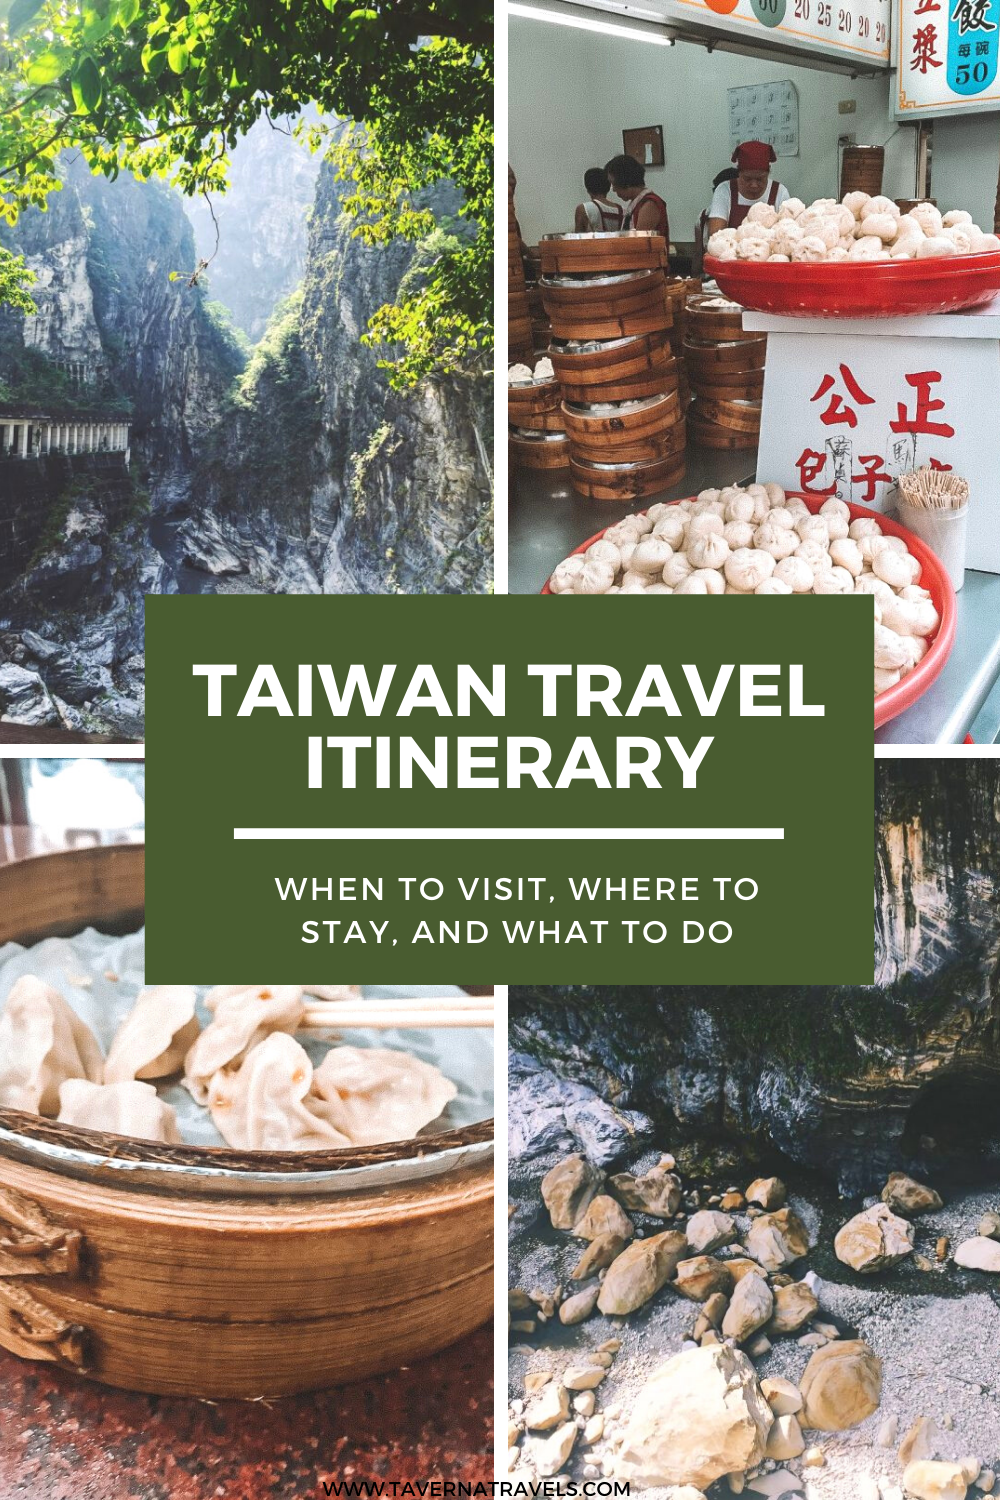 Taiwan Travel Itinerary pin